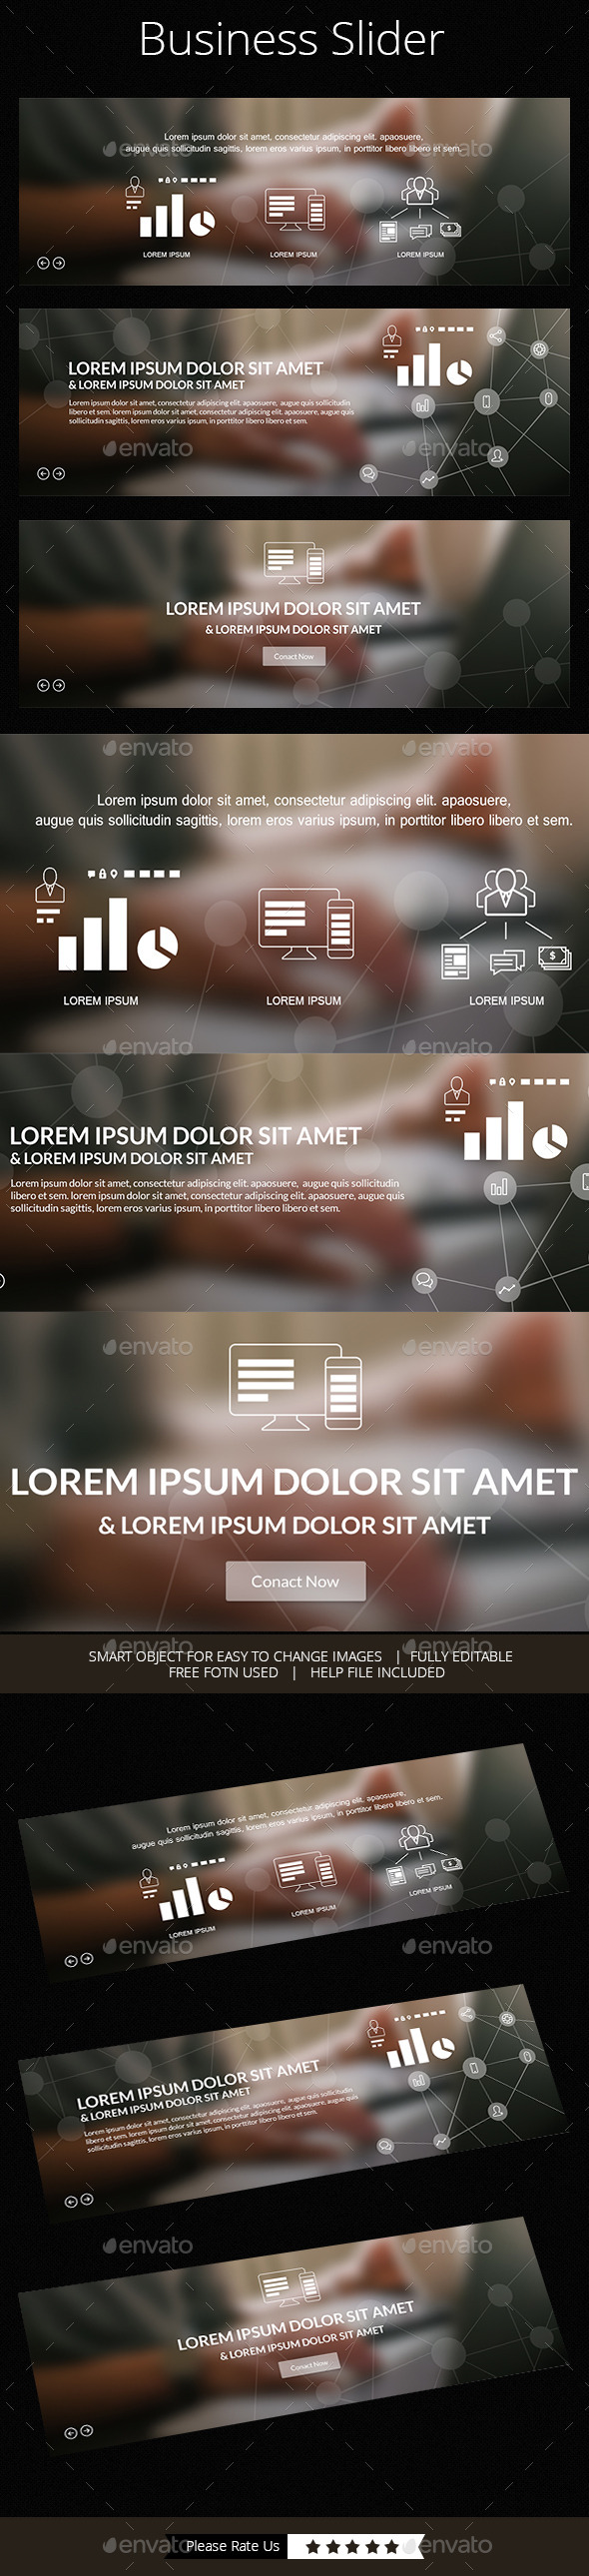 Simple 3 in 1 Business Slider - Sliders & Features Web Elements